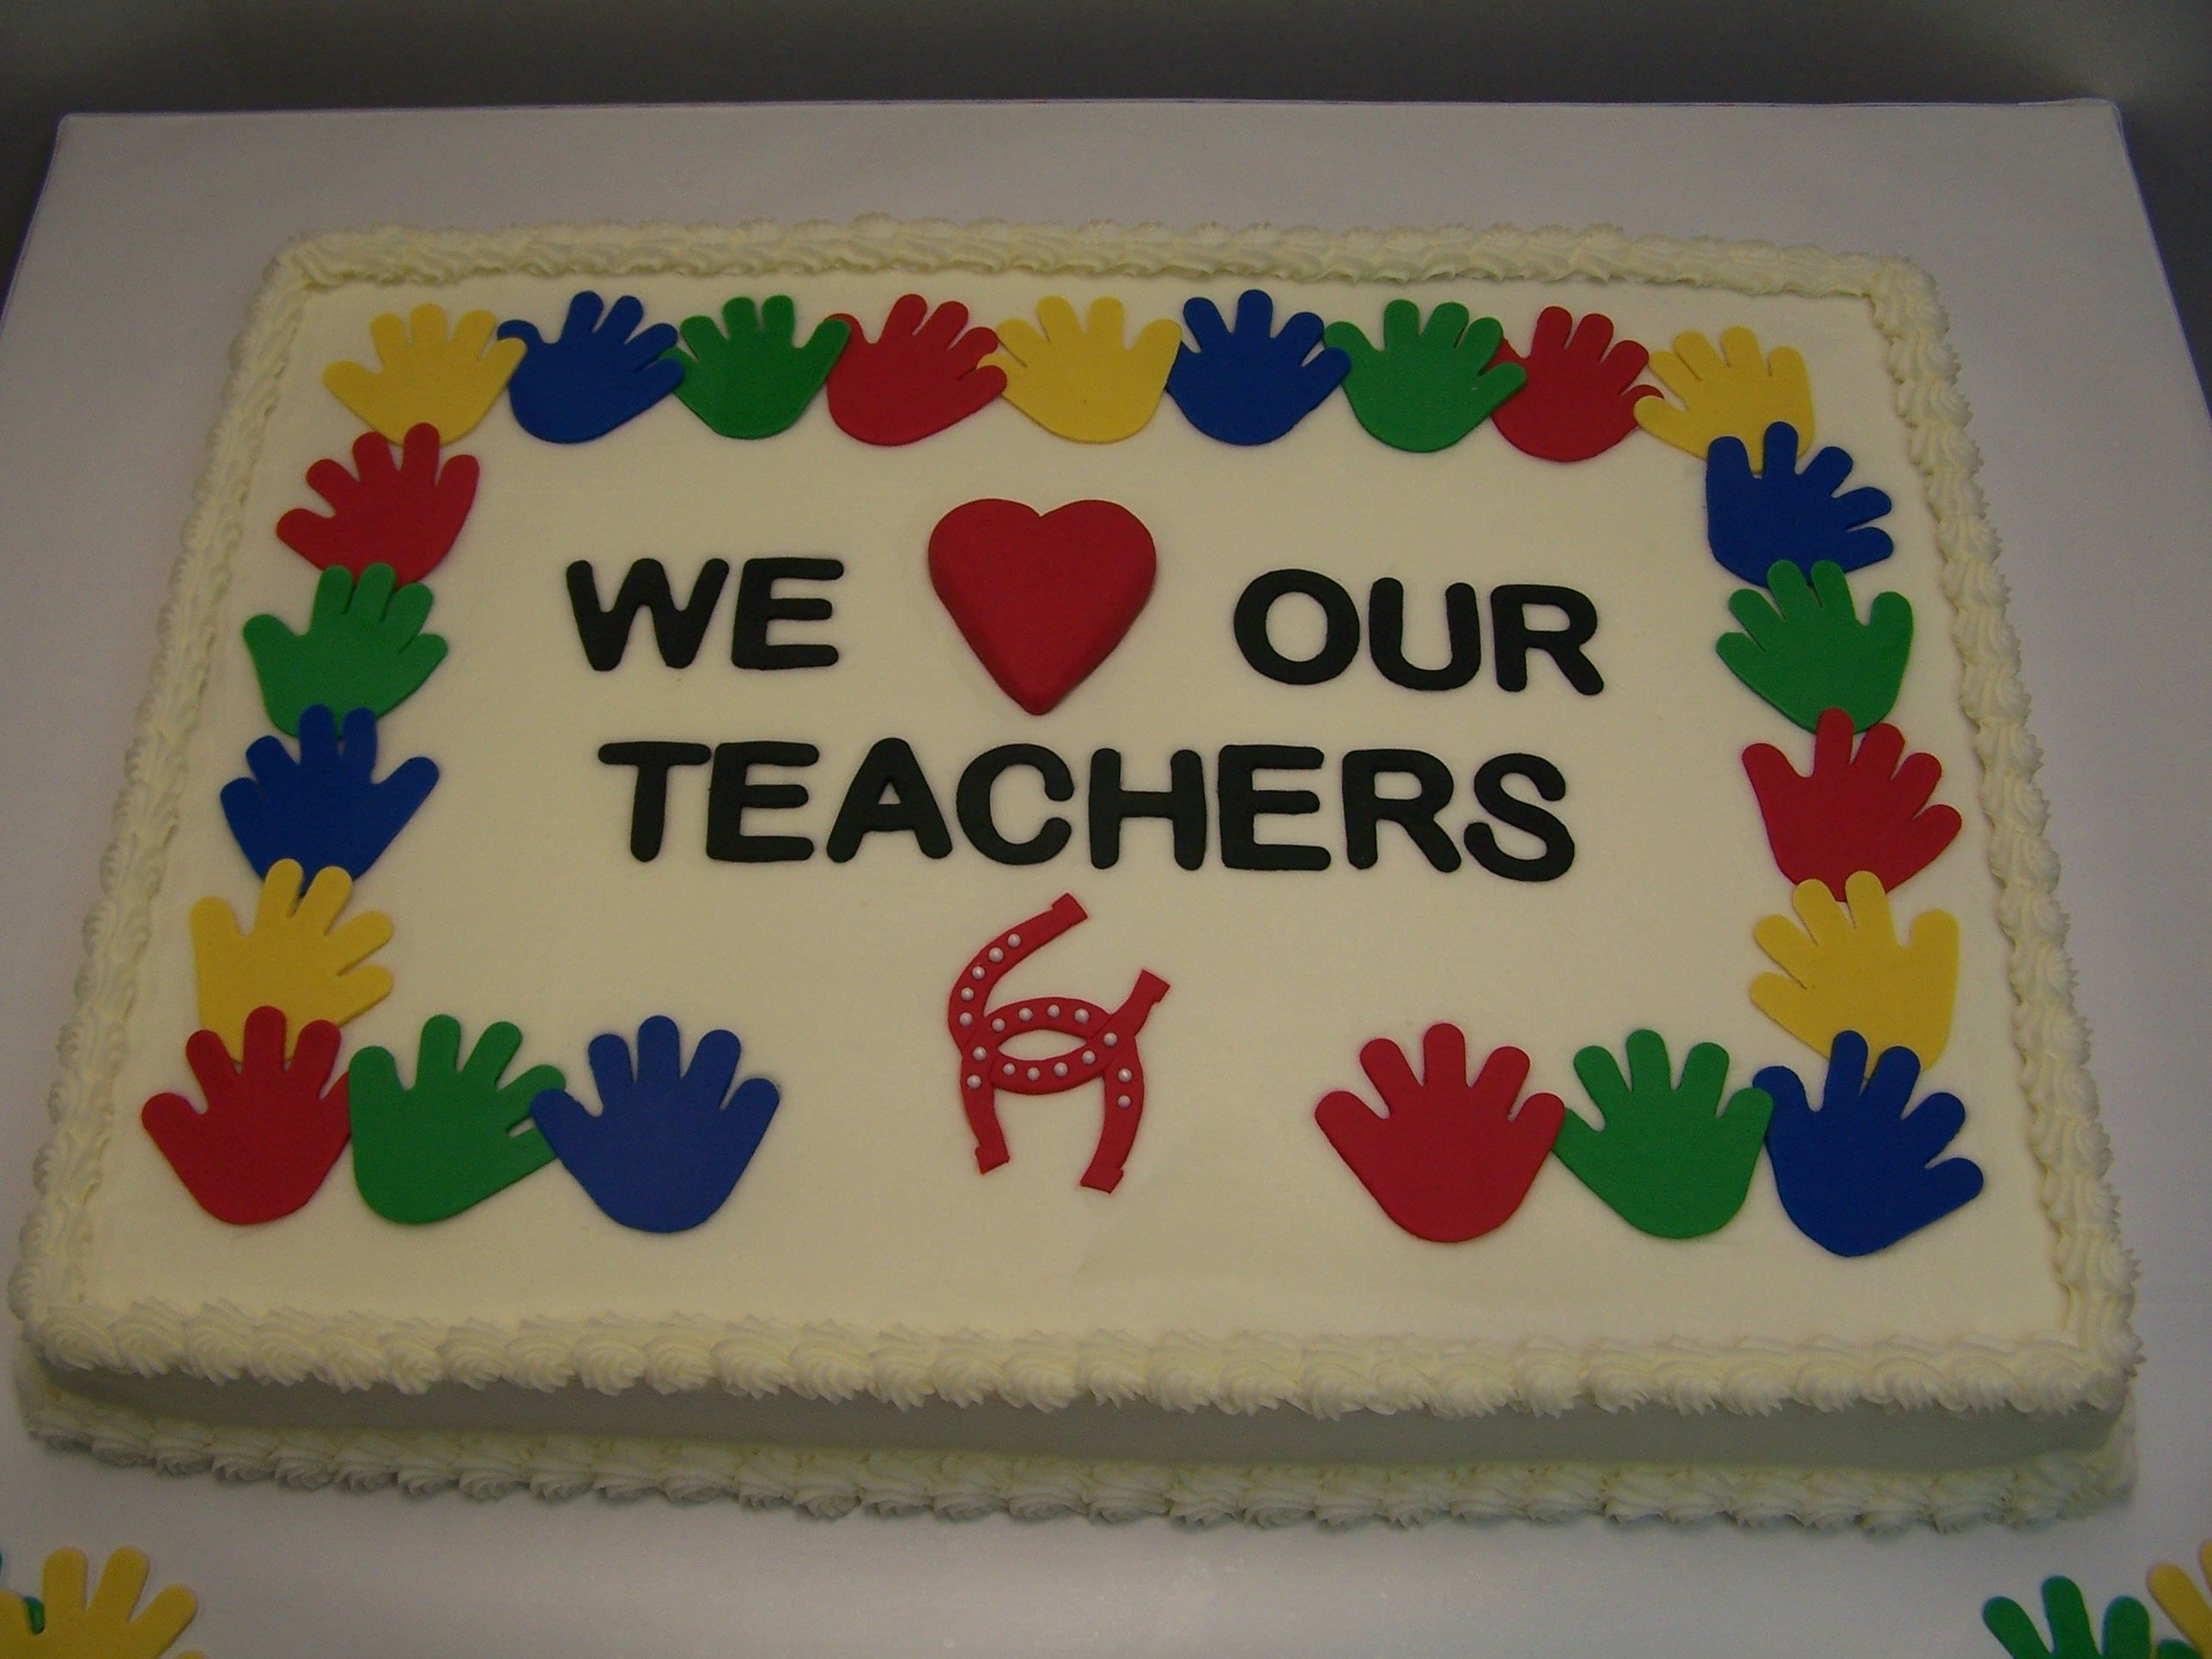 A Teacher Appreciation Week Cake Make Sure You Tell Your Favorite